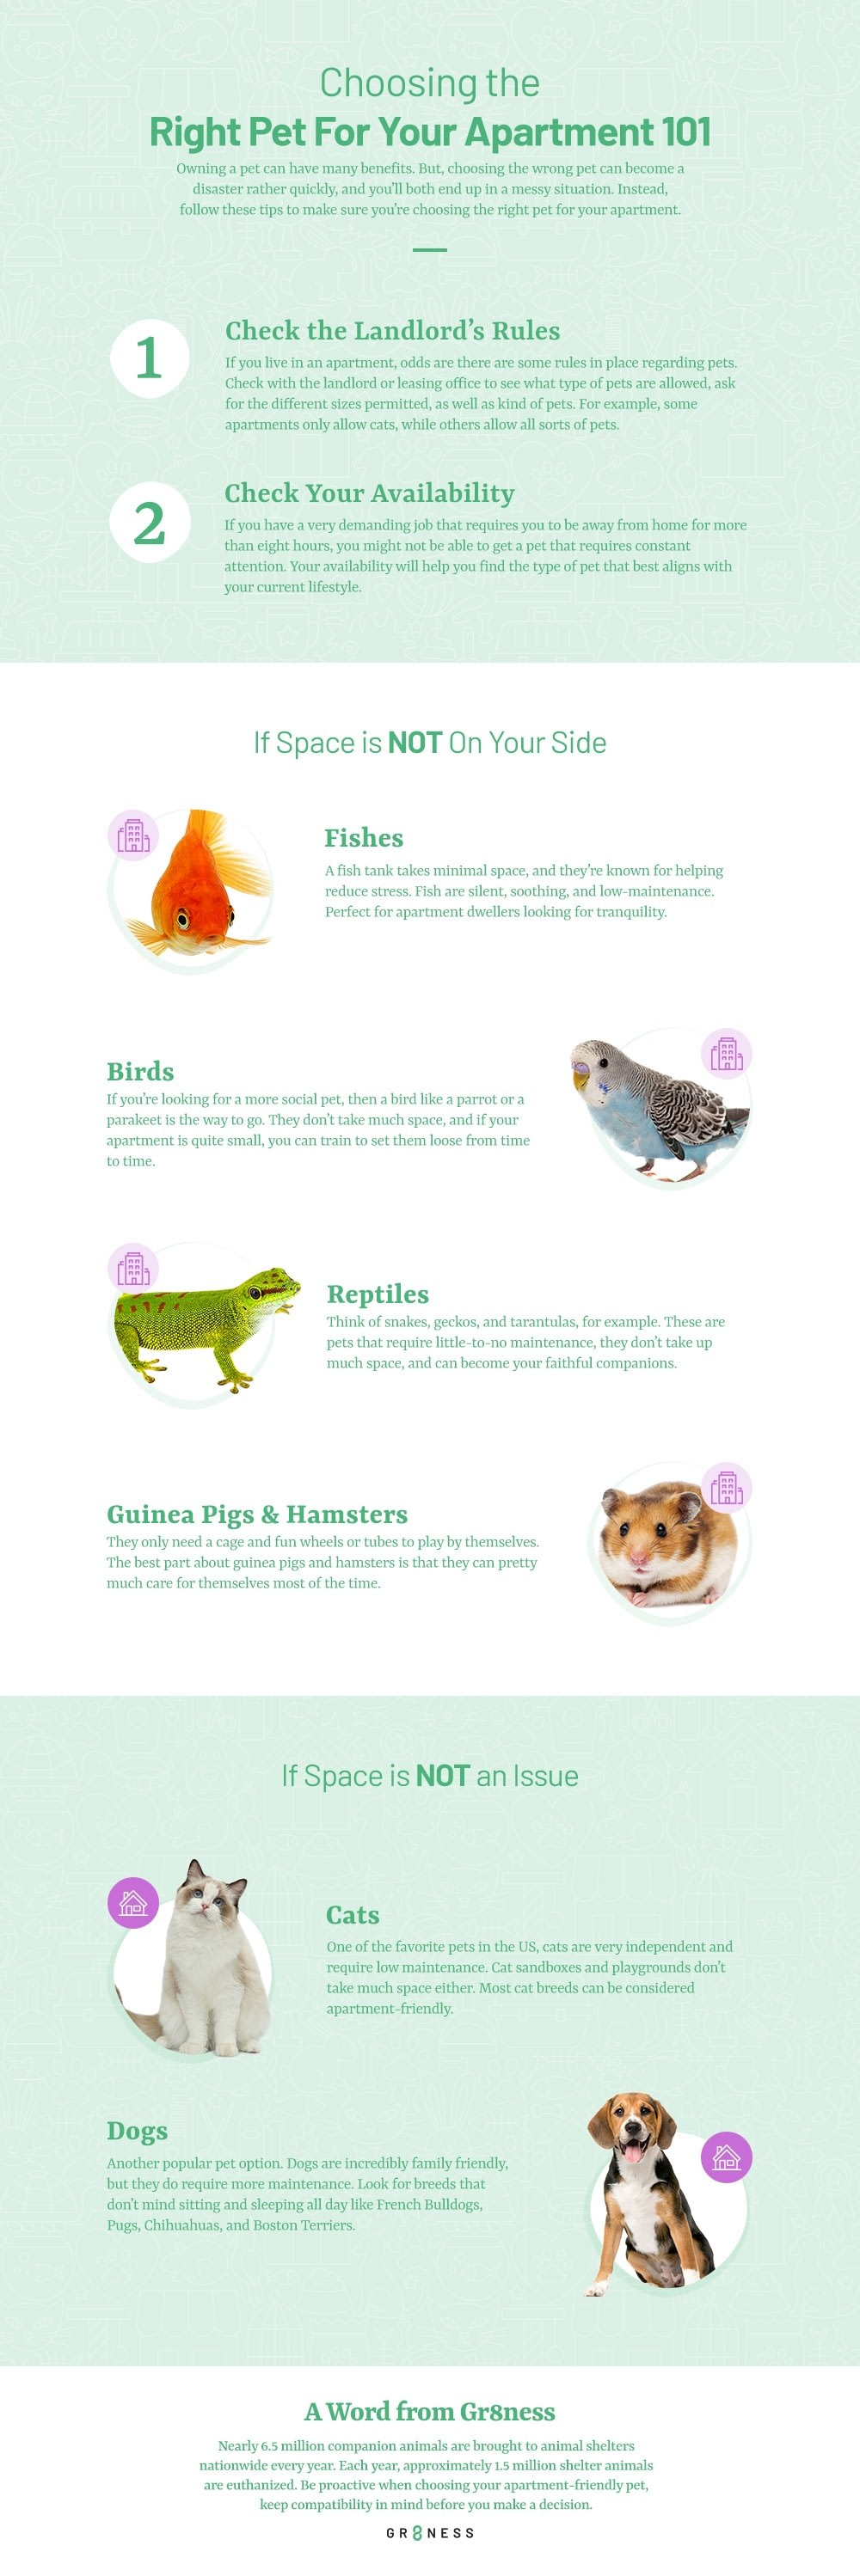 Choosing the Right Pet for Your Apartment #infographic #Pets #Pet Apartment #infographics #Right Pet #pet for apartments #Infographic #Life Hacks